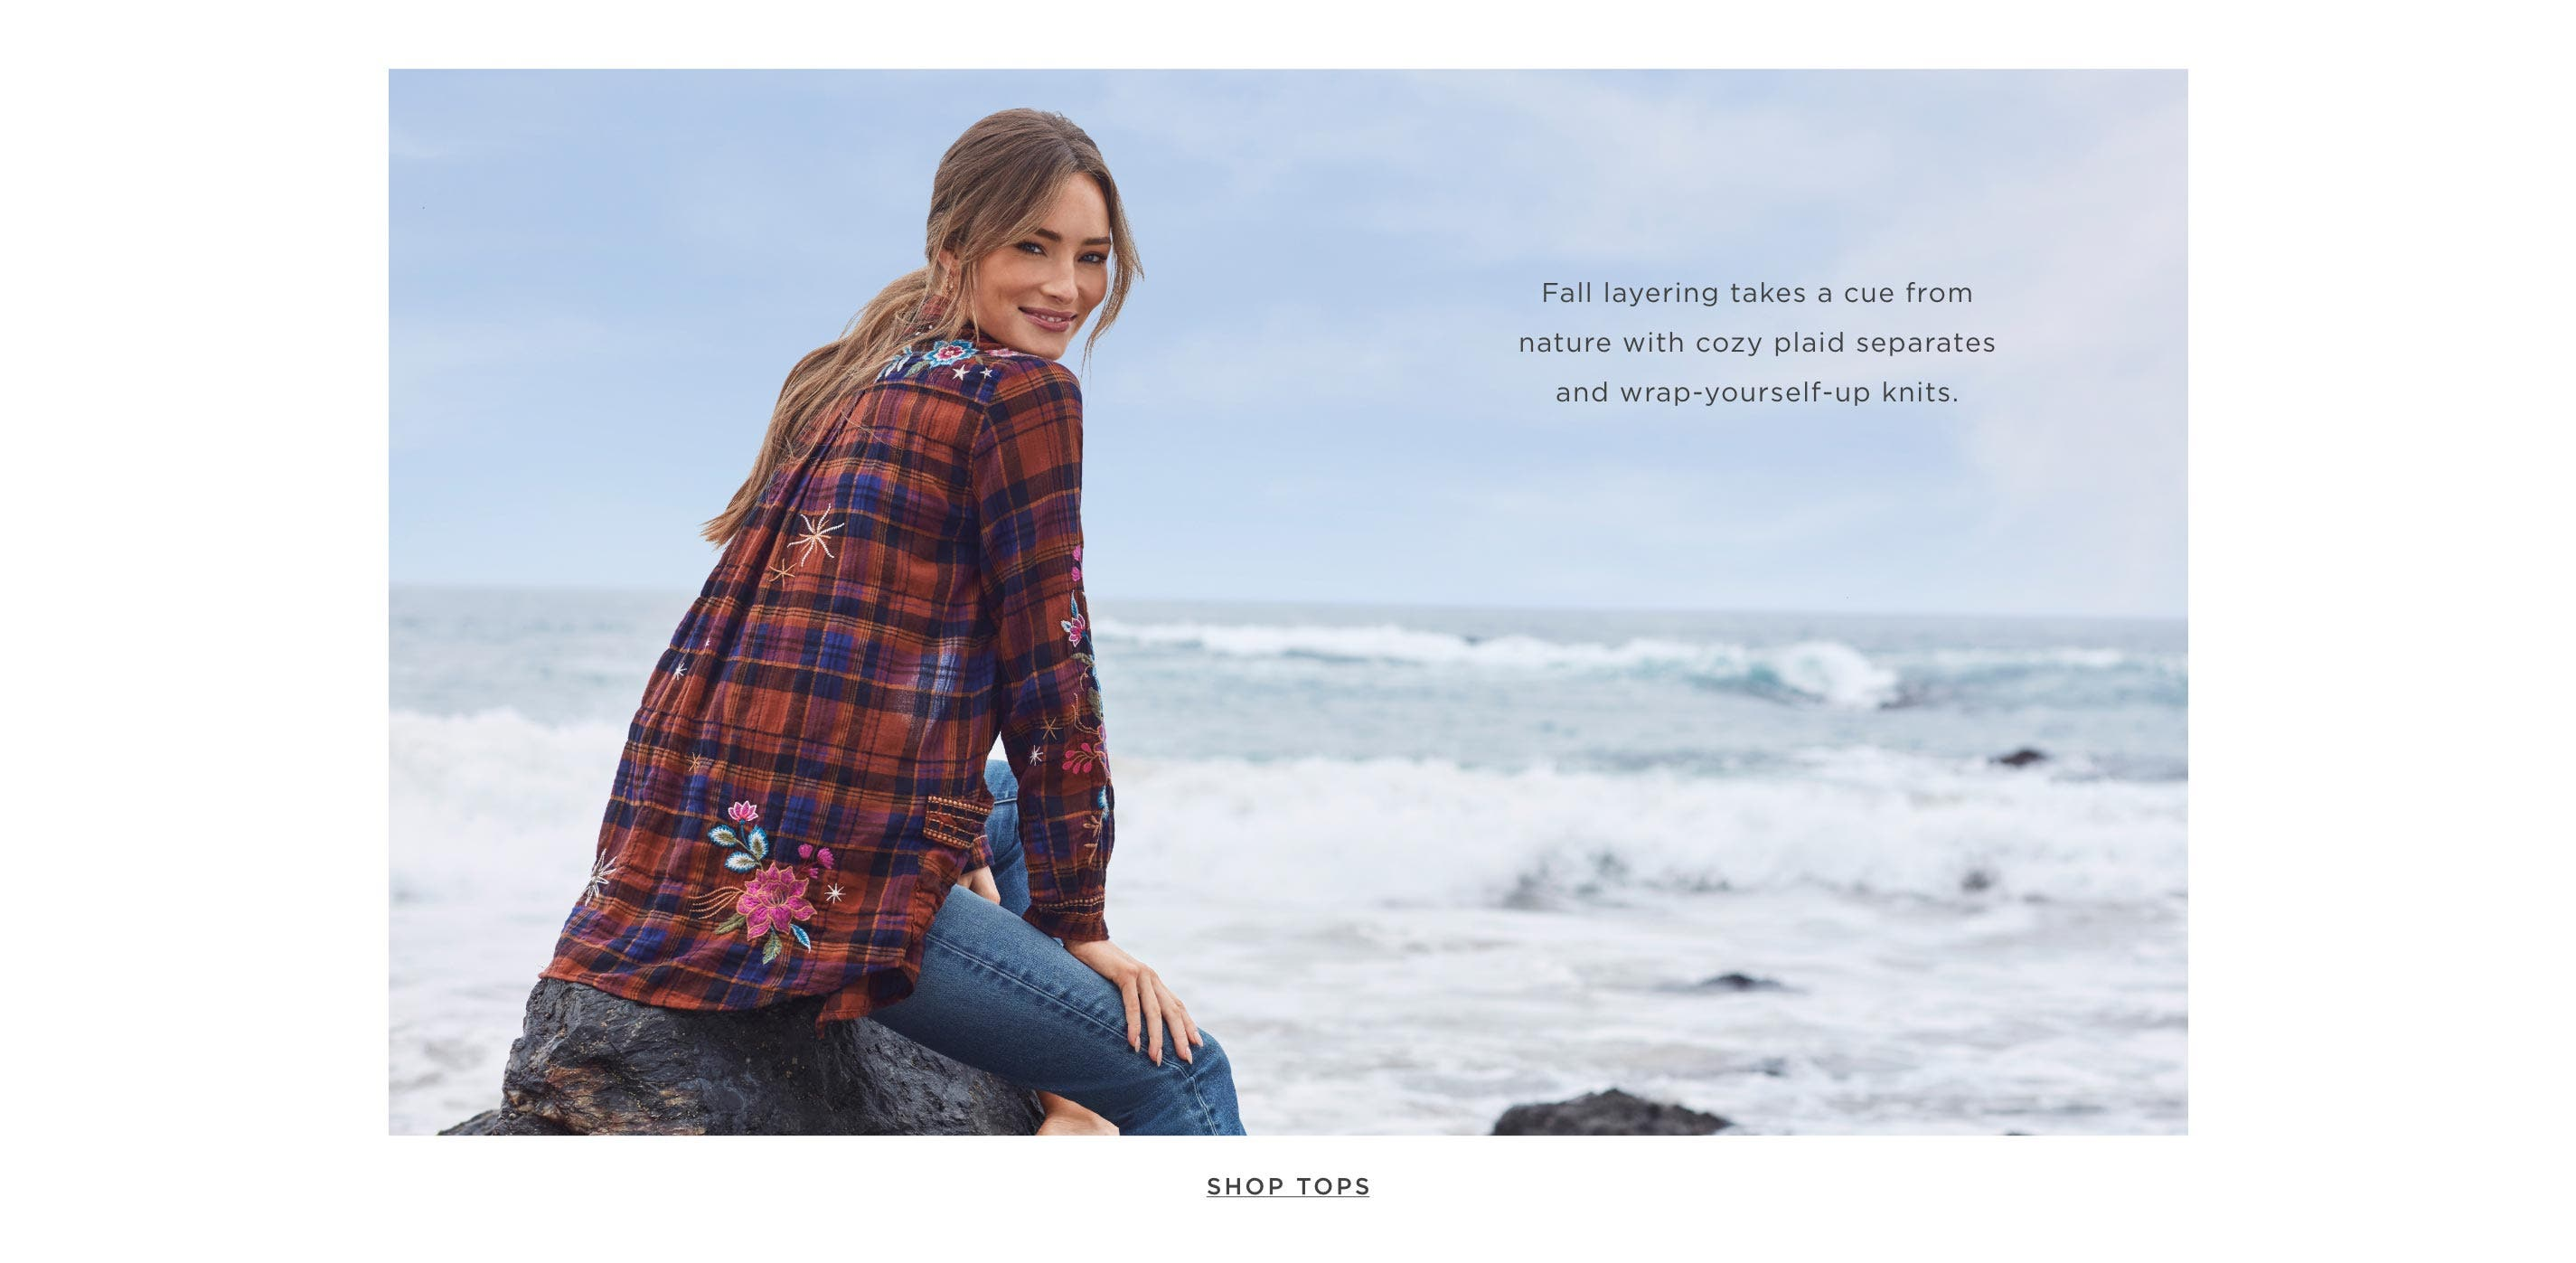 Fall layering takes a cue from nature with cozy plaid separates and wrap-yourself-up knits. Shop Tops